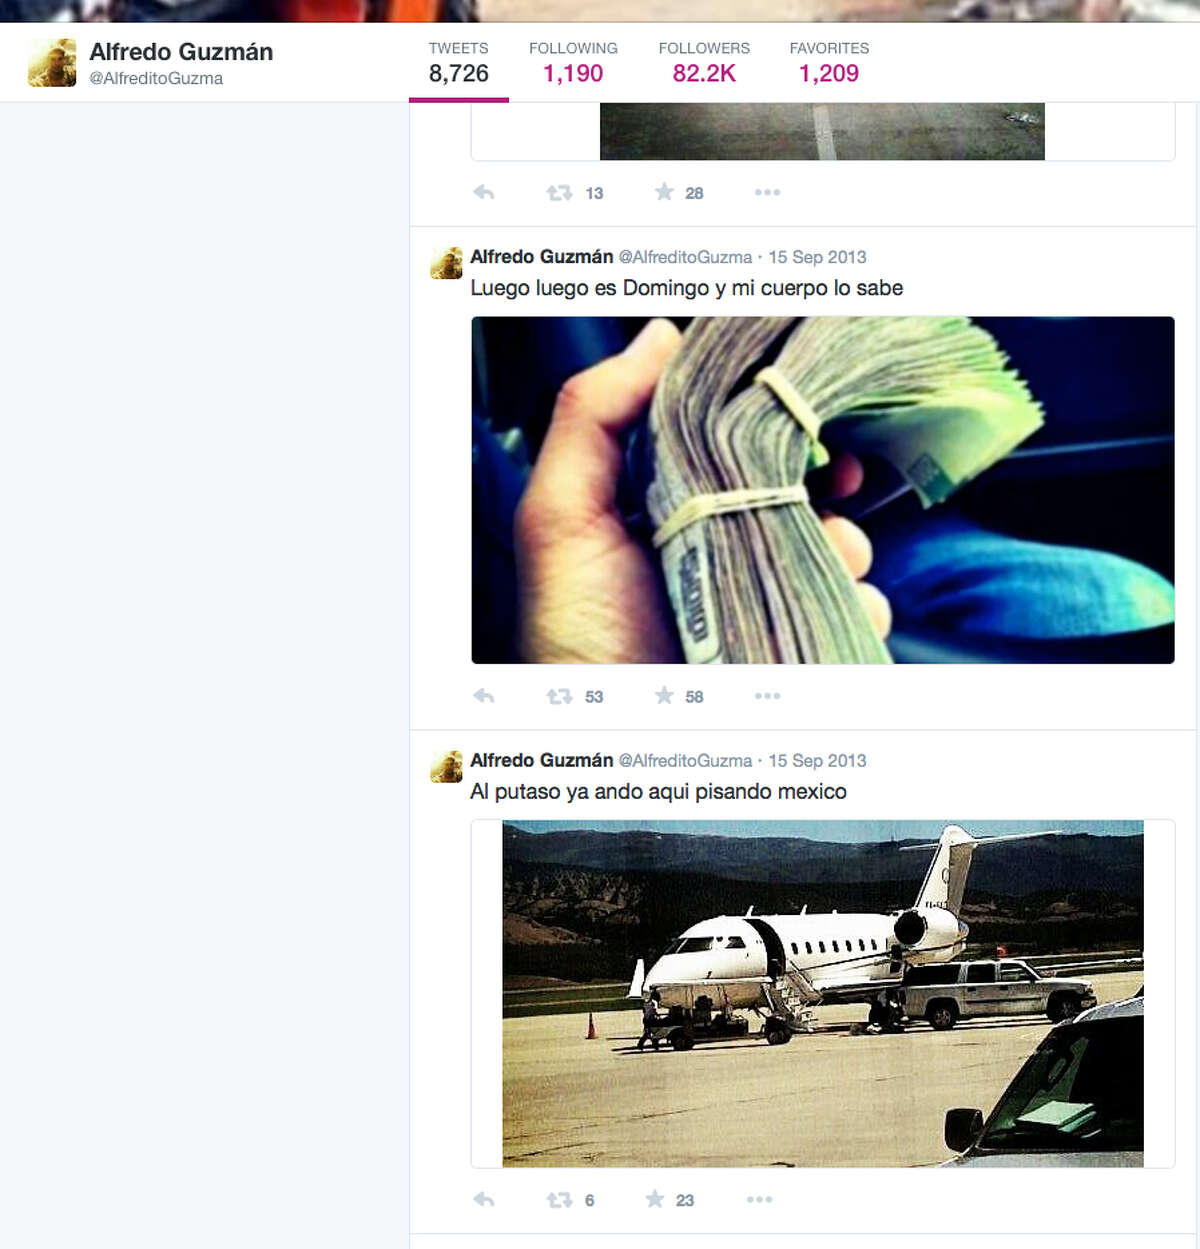 A screen grab taken from the Twitter page of Alfredo Guzman shows images which give viewers an inside look at the life of a cartel member. It's believed that the siblings help run